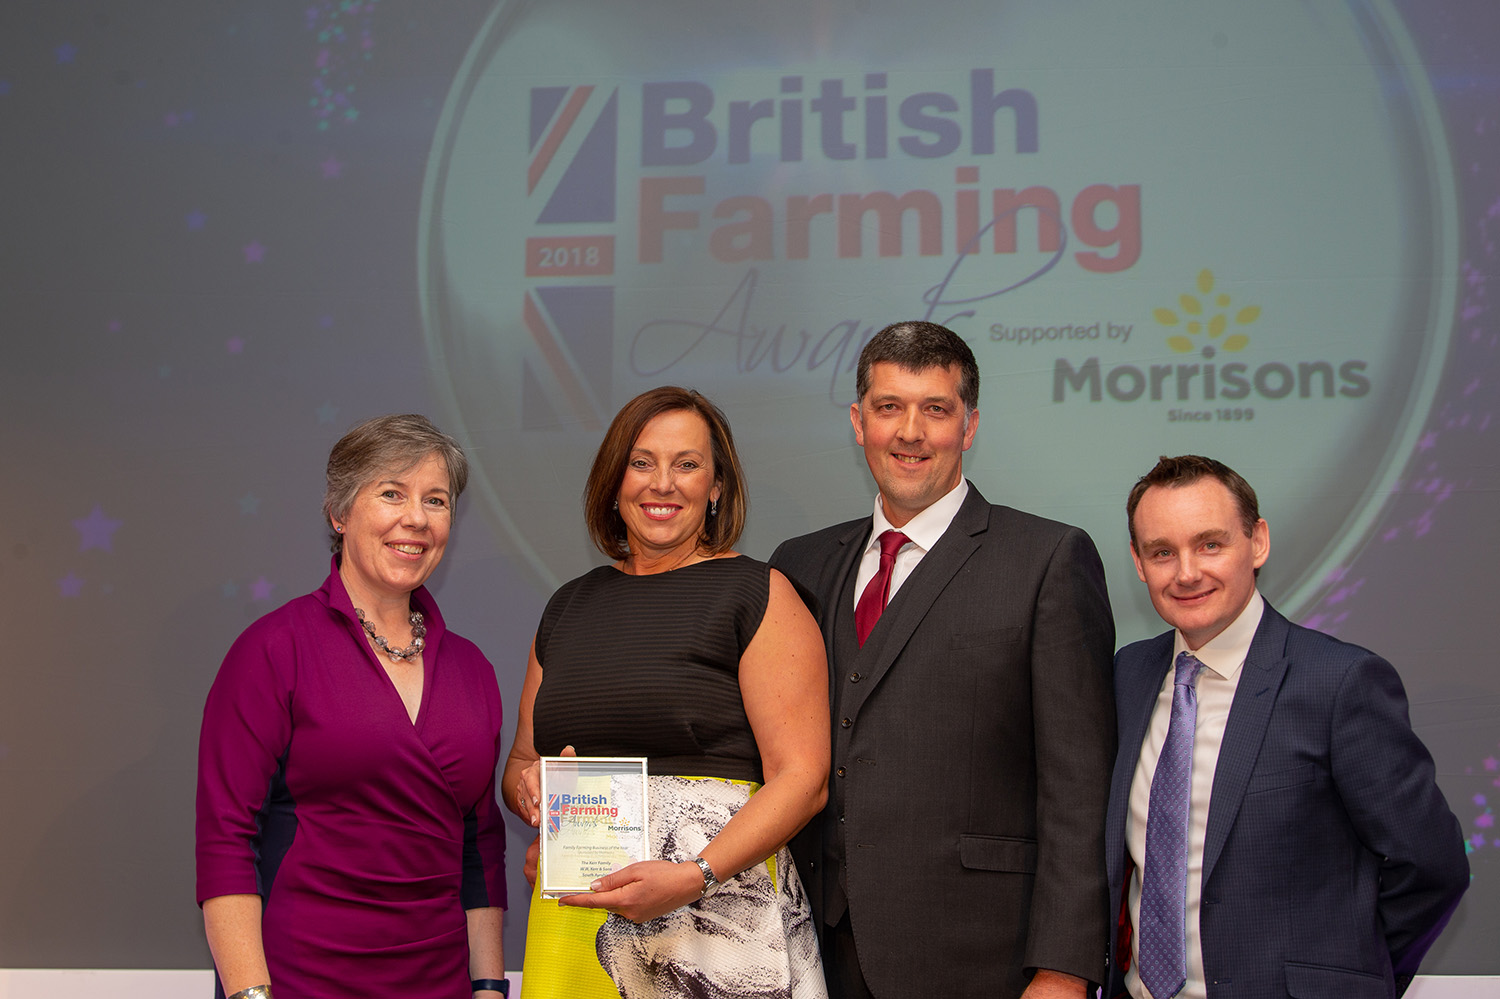 Family Farming Business of the Year, sponsored by Morrisons